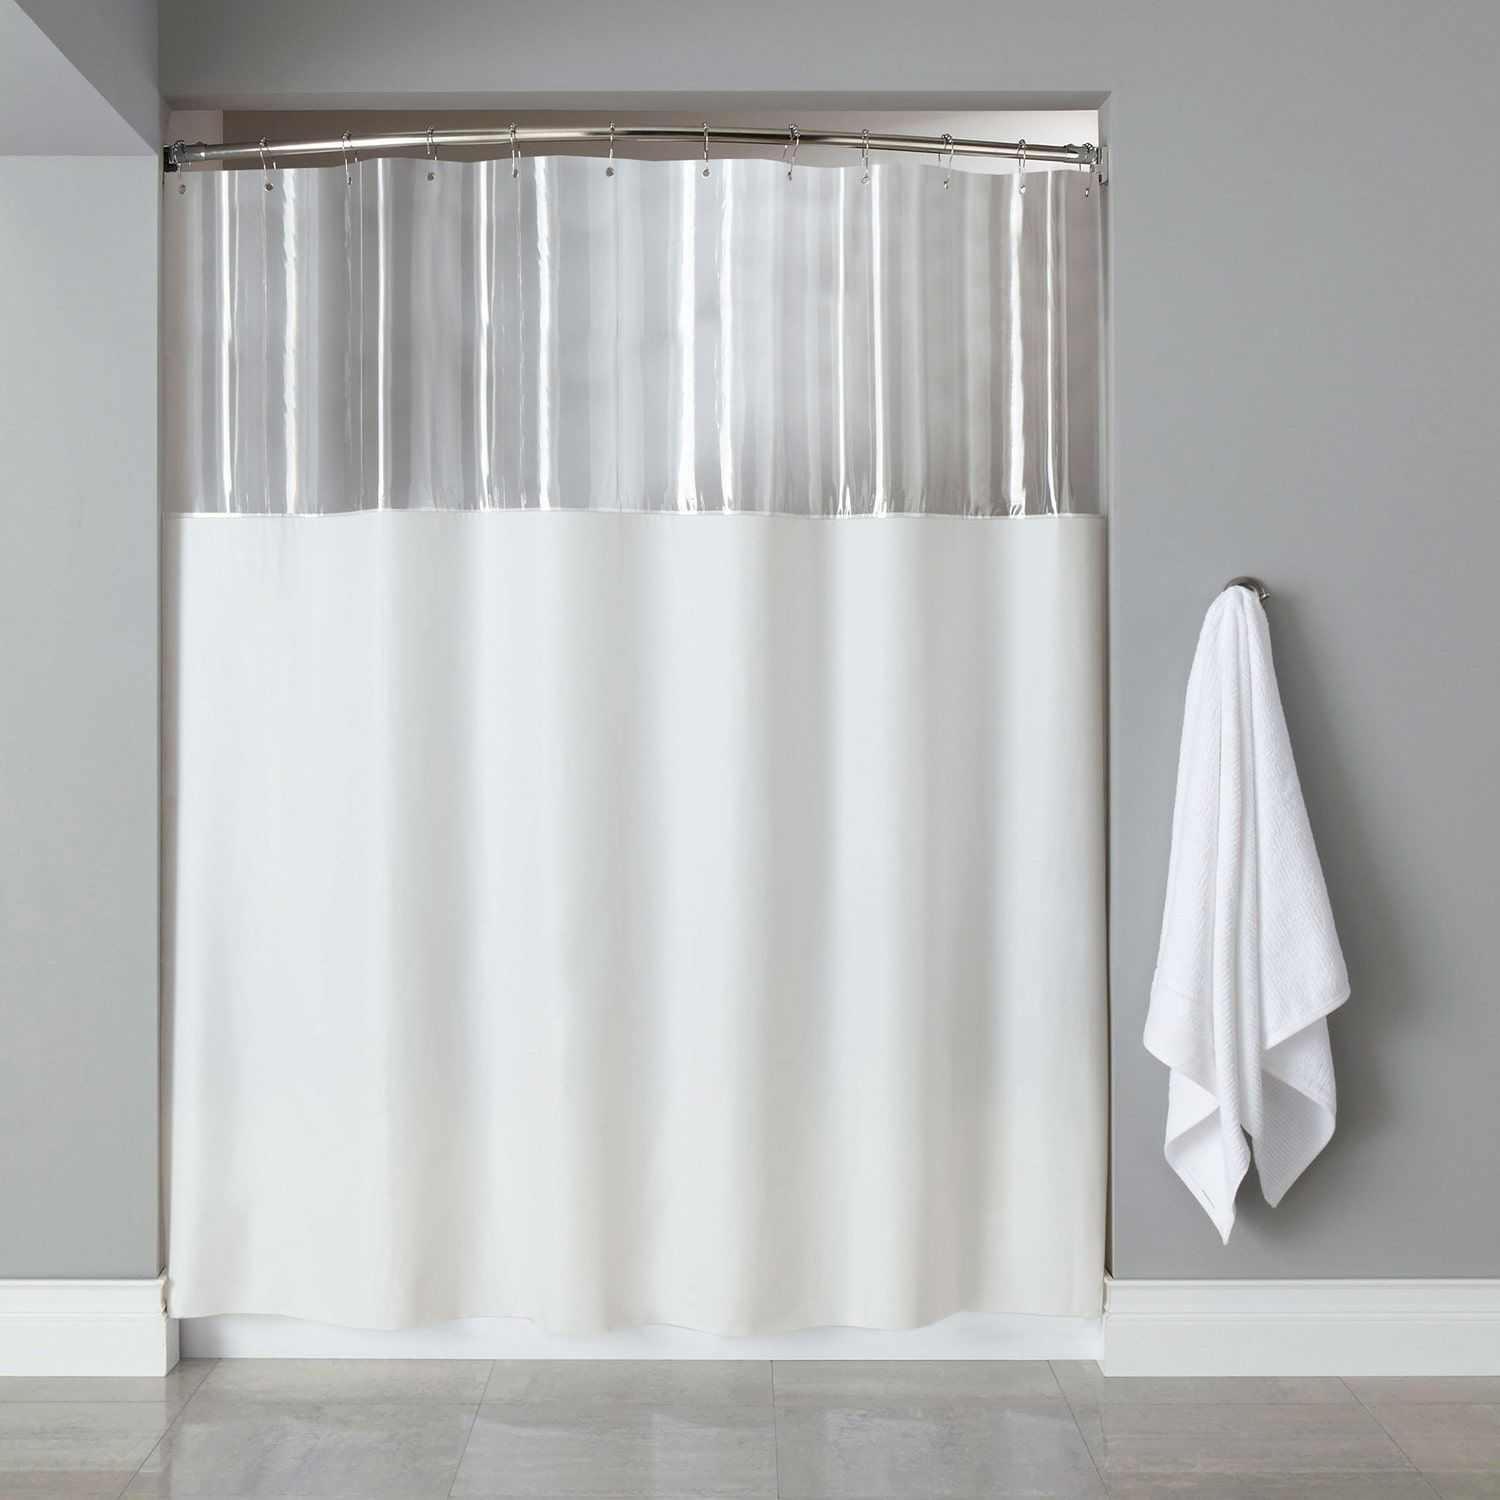 Extra long mildewresistant clear shower curtain